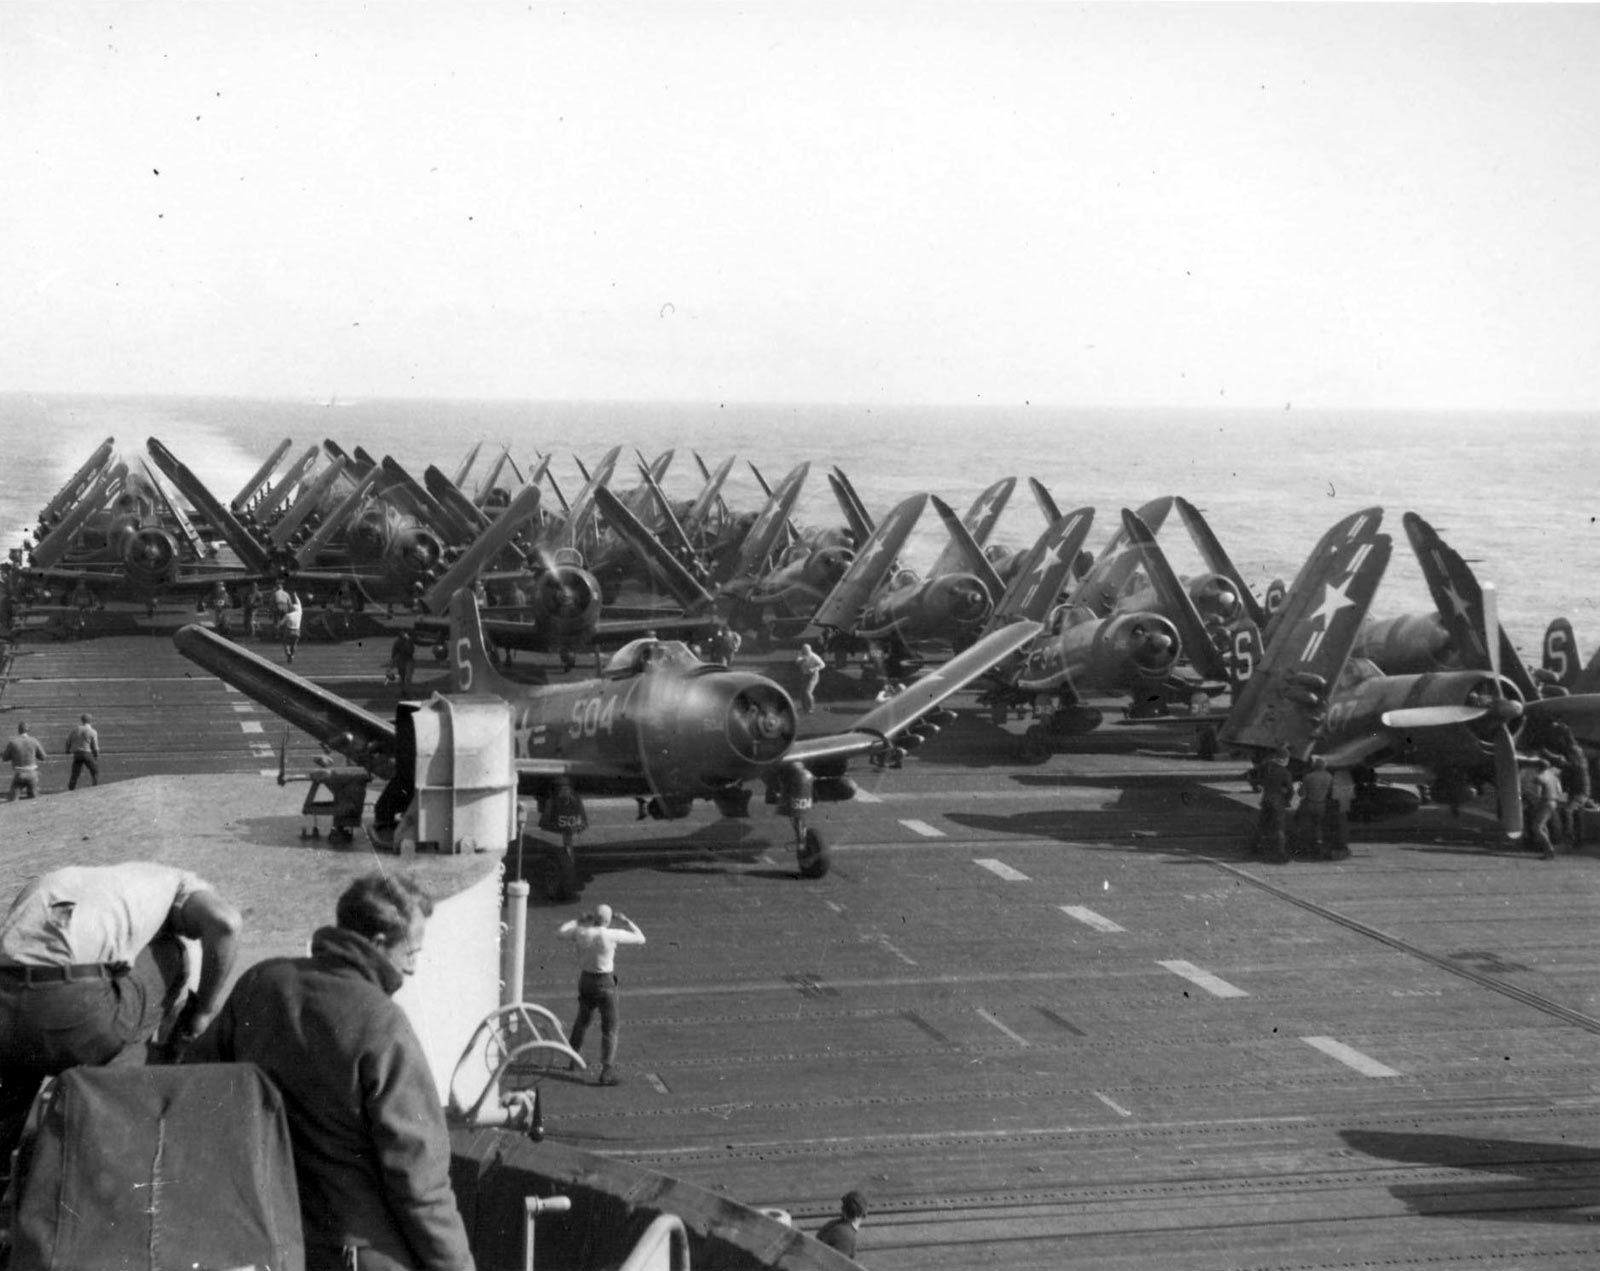 u s  navy aircraft on the flight deck of the uss valley forge  cv 45  preparing to launch for a